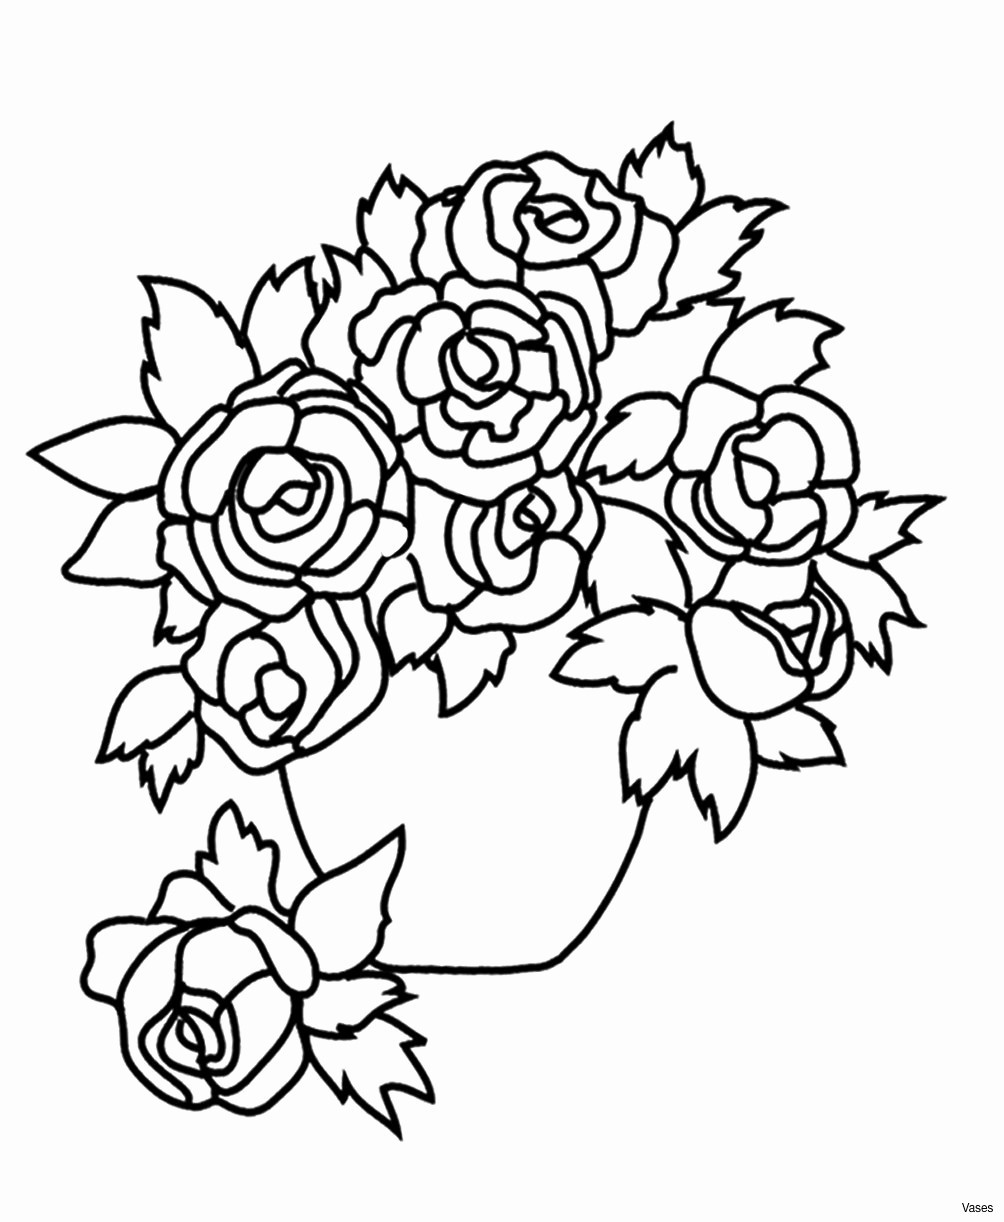 square vase flower arrangements of elegant roses in a vase pictures beginneryogaclassesnear me within rose color page awesome vases flowers in vase coloring pages a flower top i 0d flowers